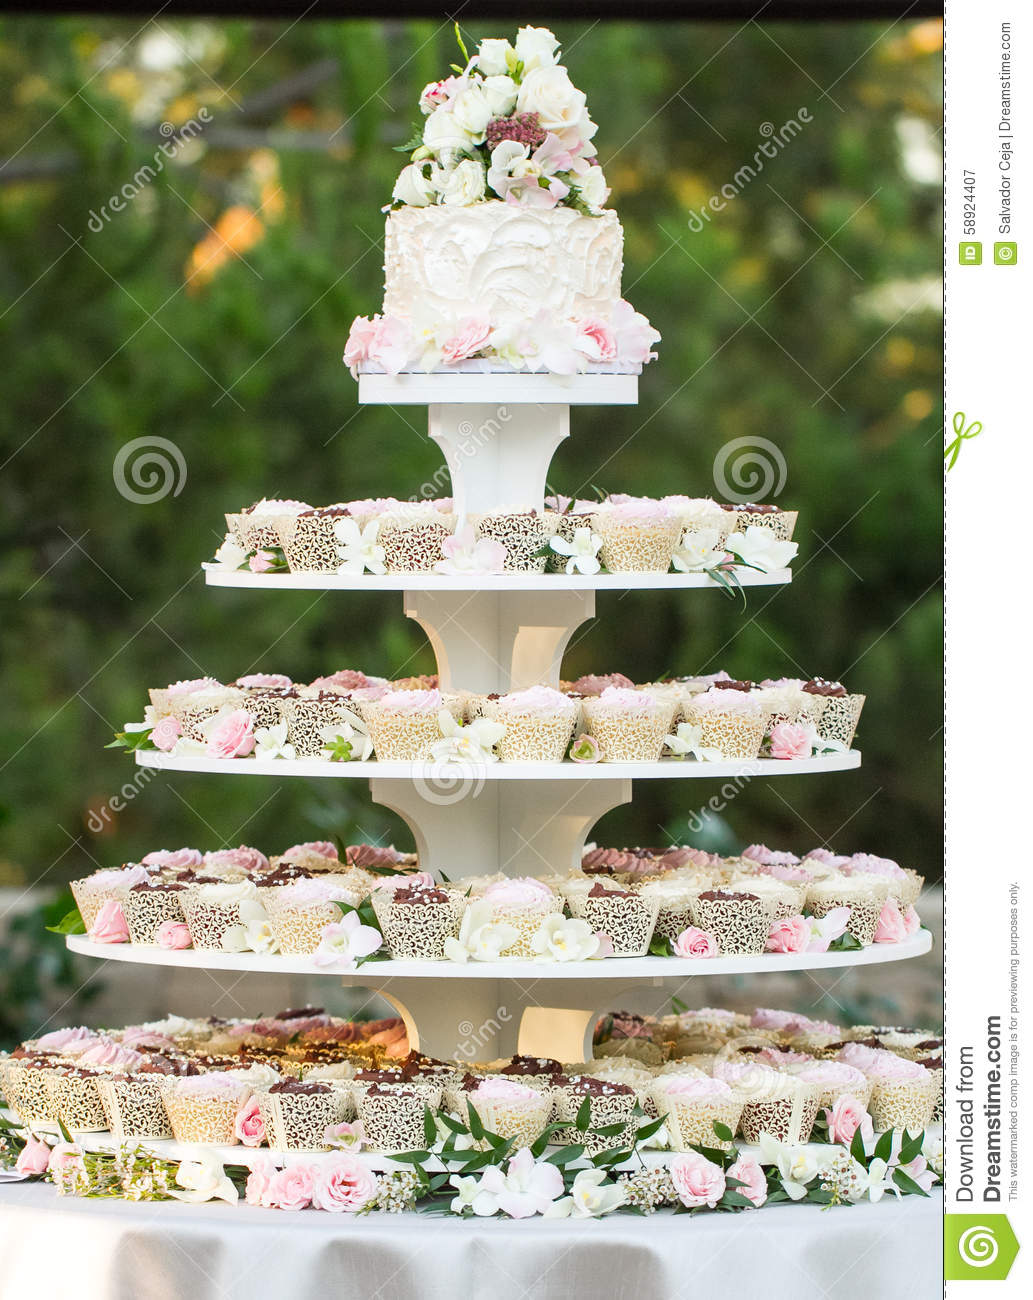 Stock Photo Wedding Cupcake Cake Decor Table Setting Made Image58924407 further Aswan together with 7176267 together with Messina For Mount Etna Port besides St Lucia Luxury Resorts. on romantic setting images